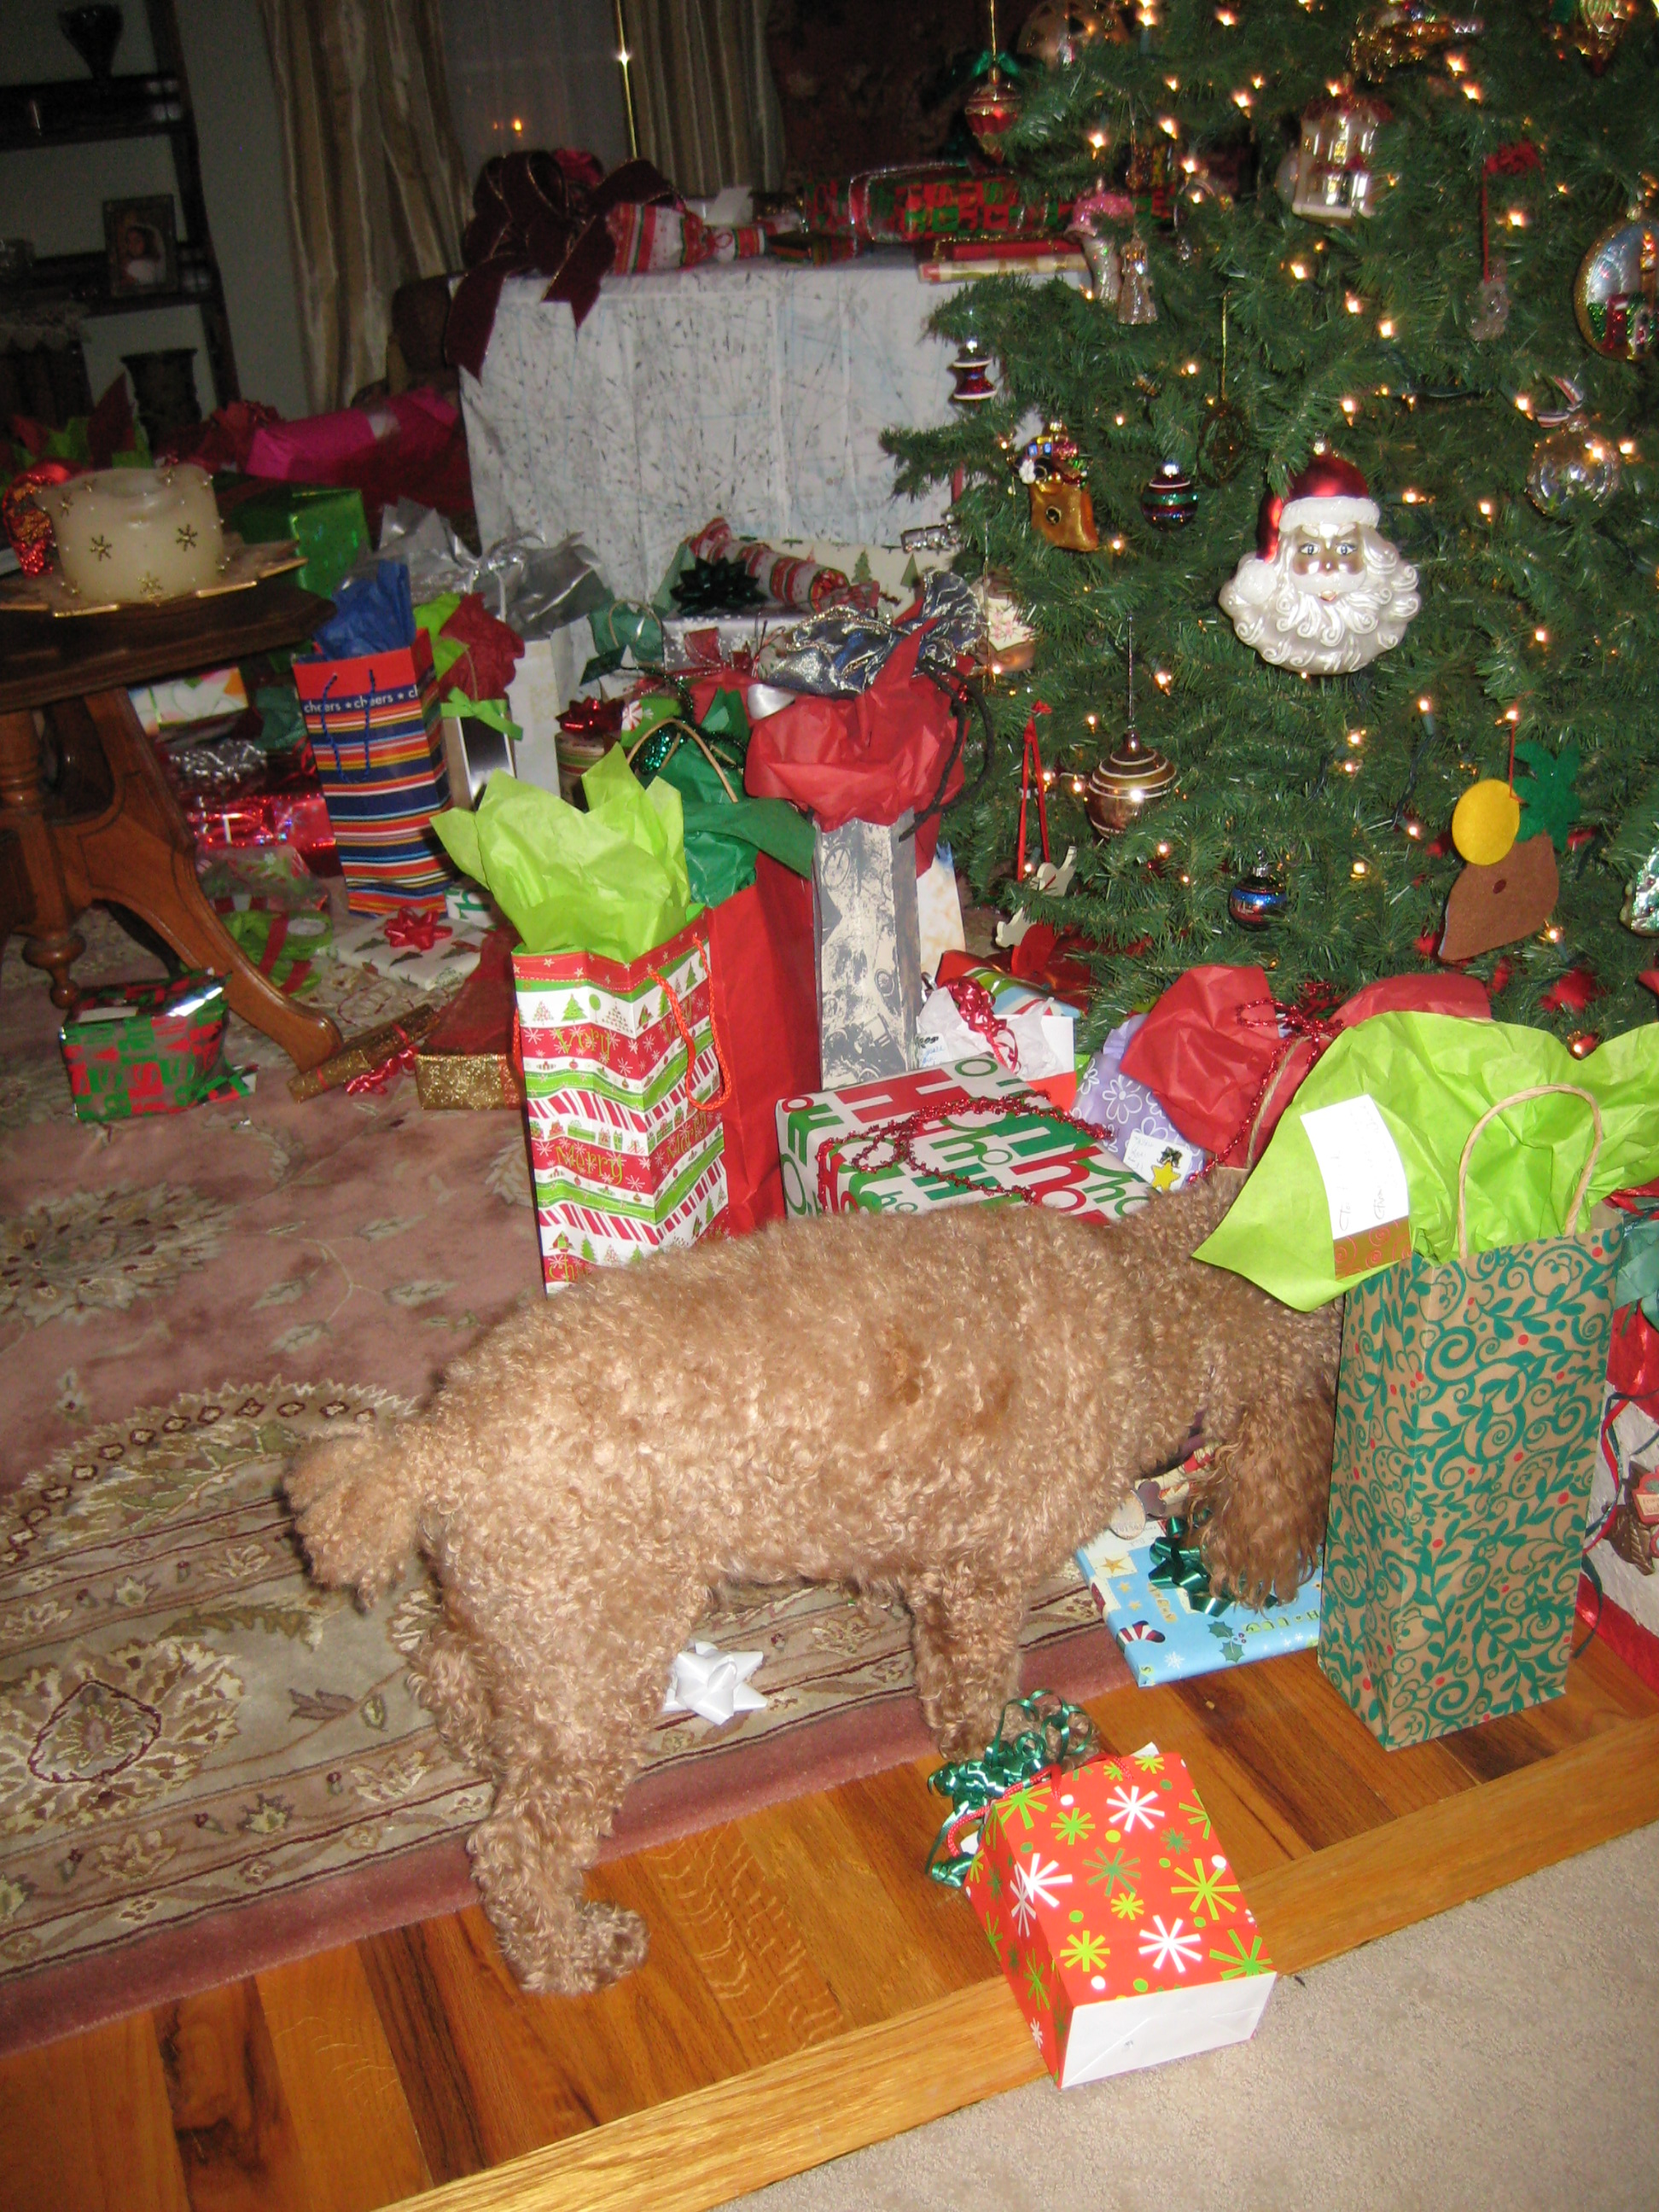 Picking Out Presents